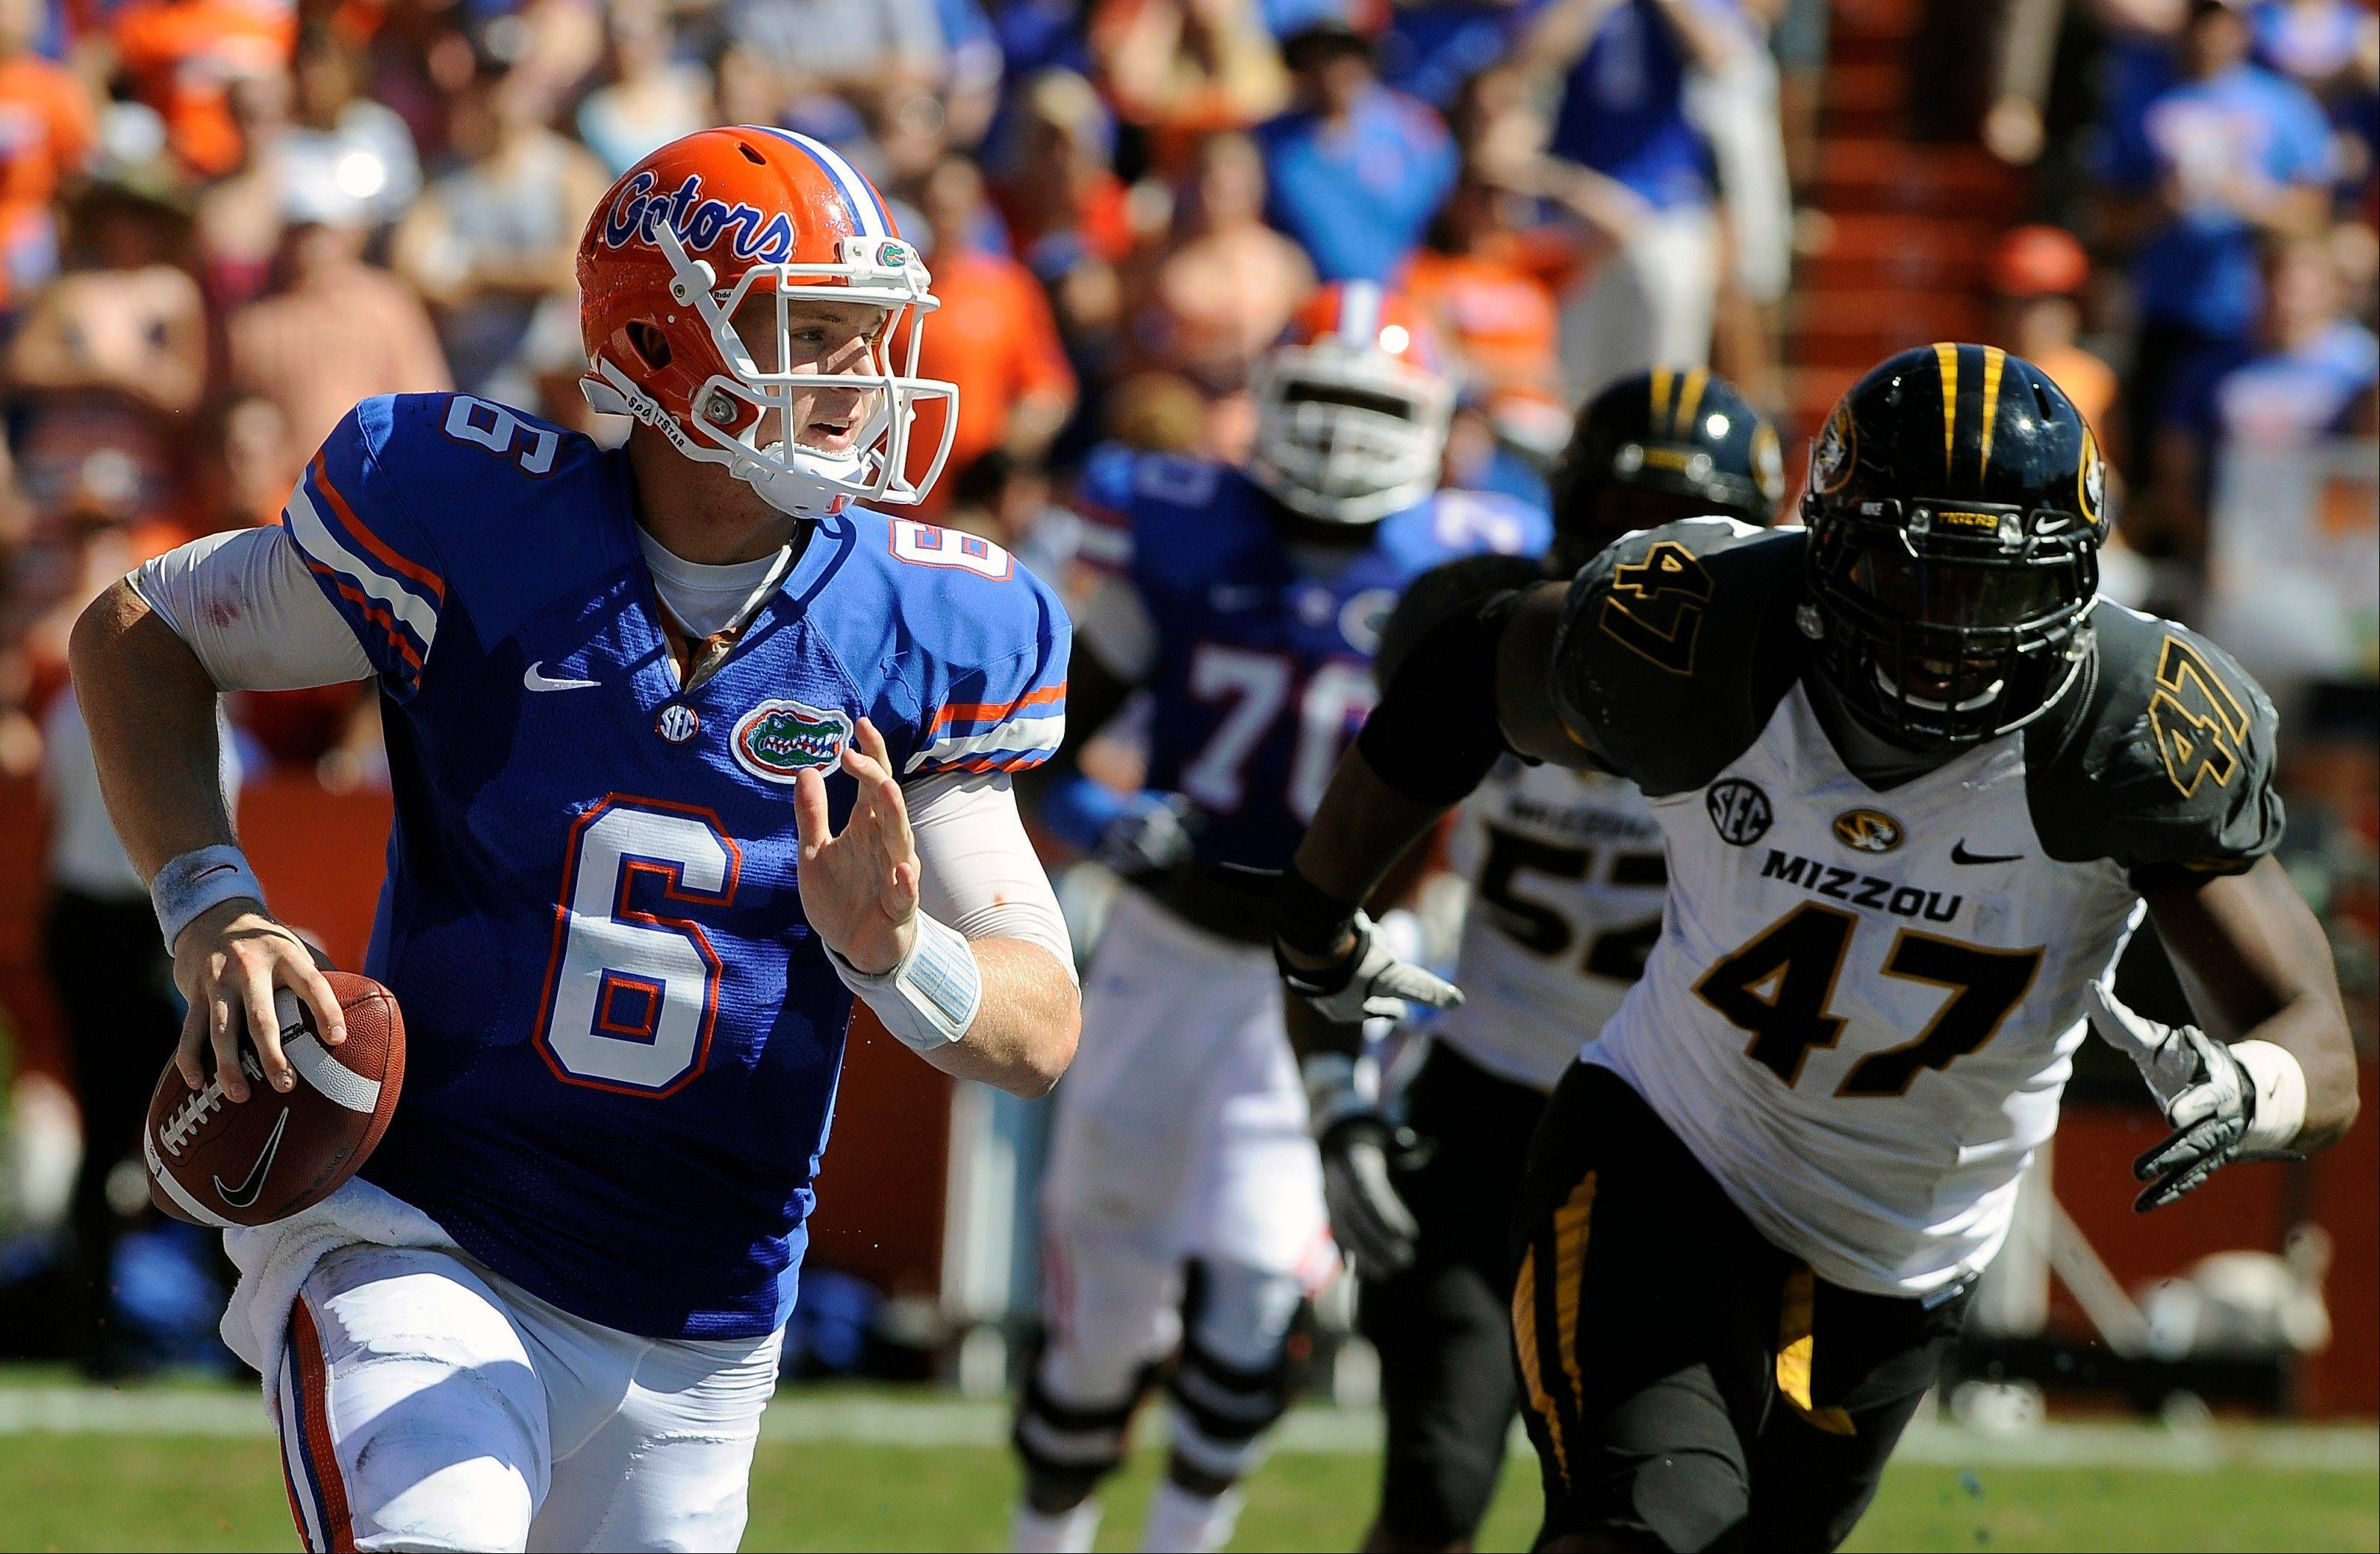 Florida quarterback Jeff Driskel scrambles with the ball as Missouri defensive lineman Kony Ealy tries to stop him Satudray during the first half.